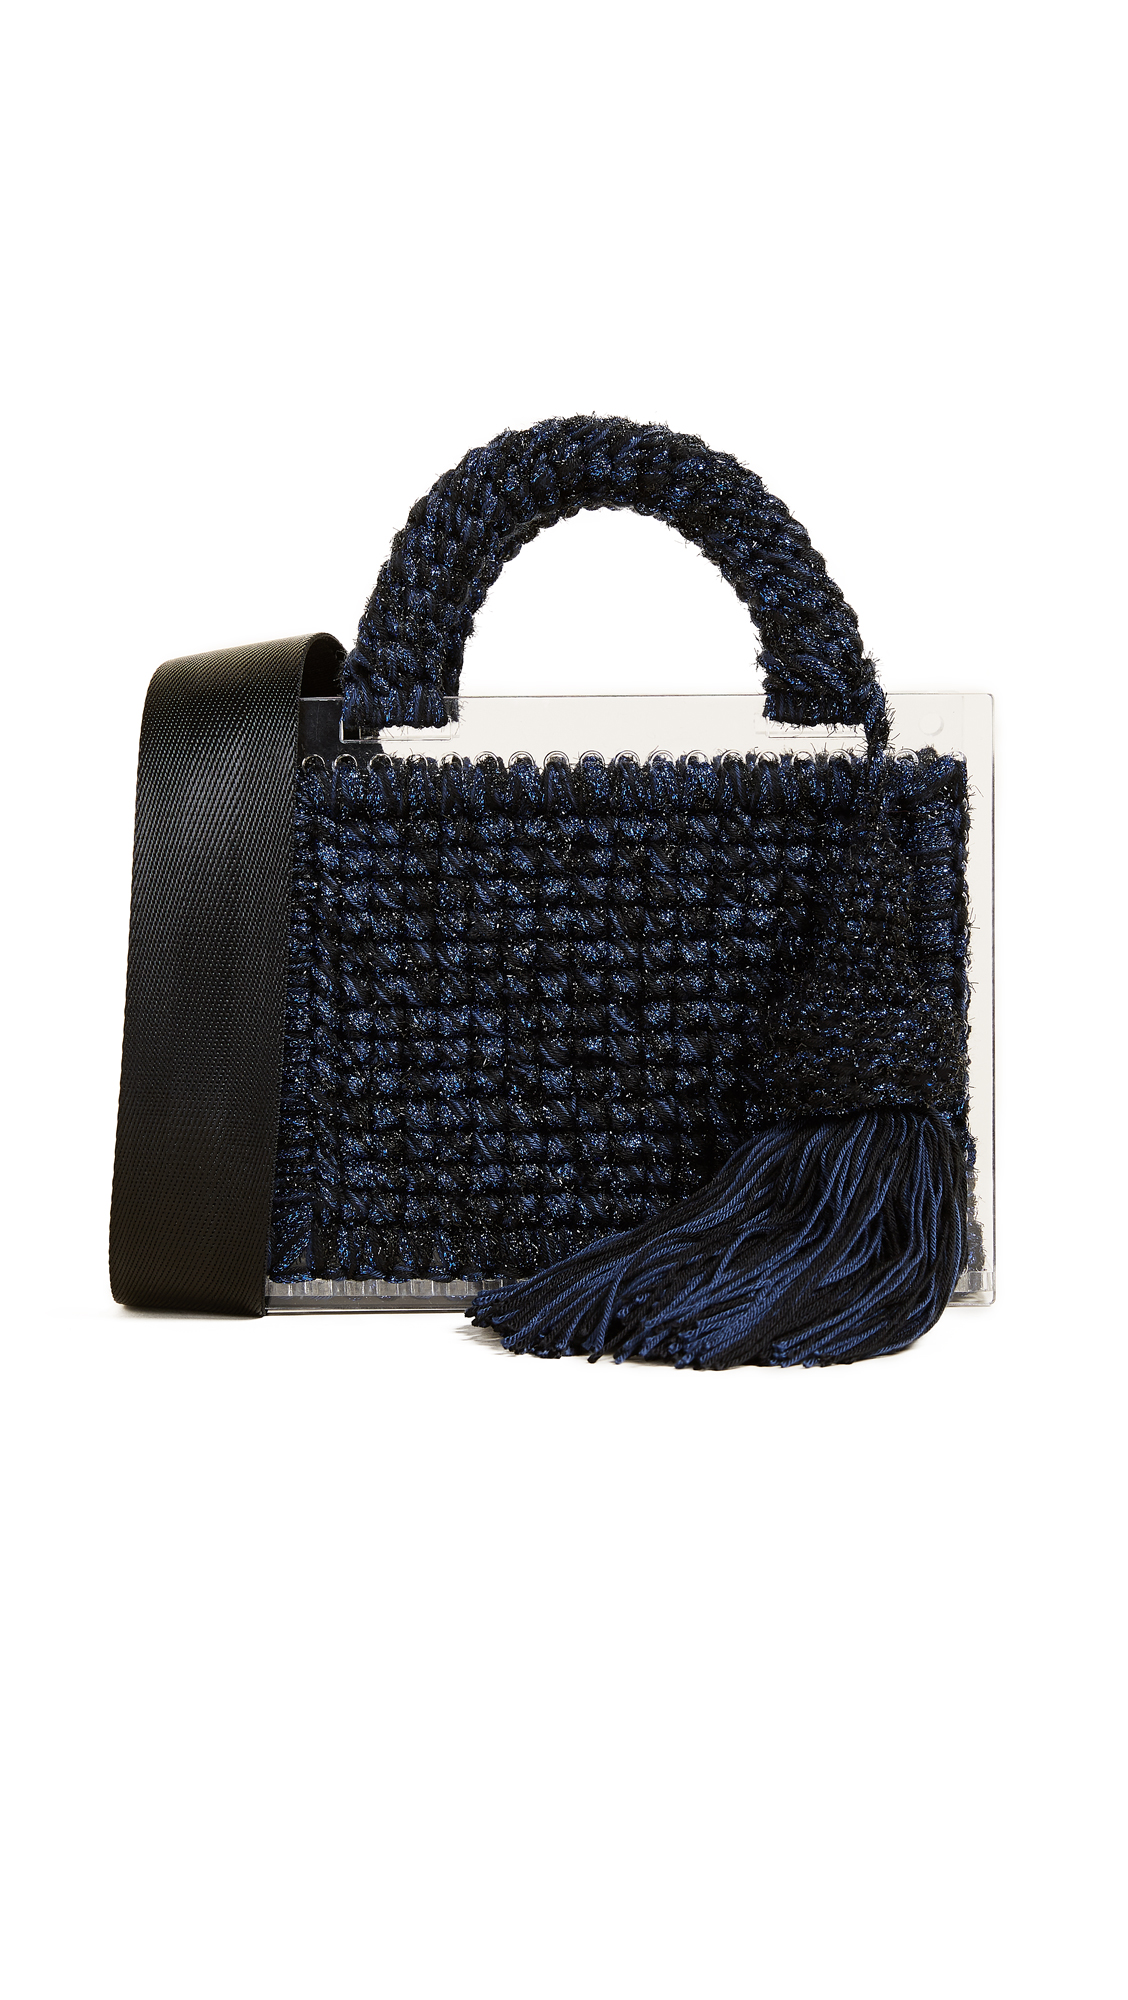 0711 Lyudmila St. Barts Purse - Blue/Black